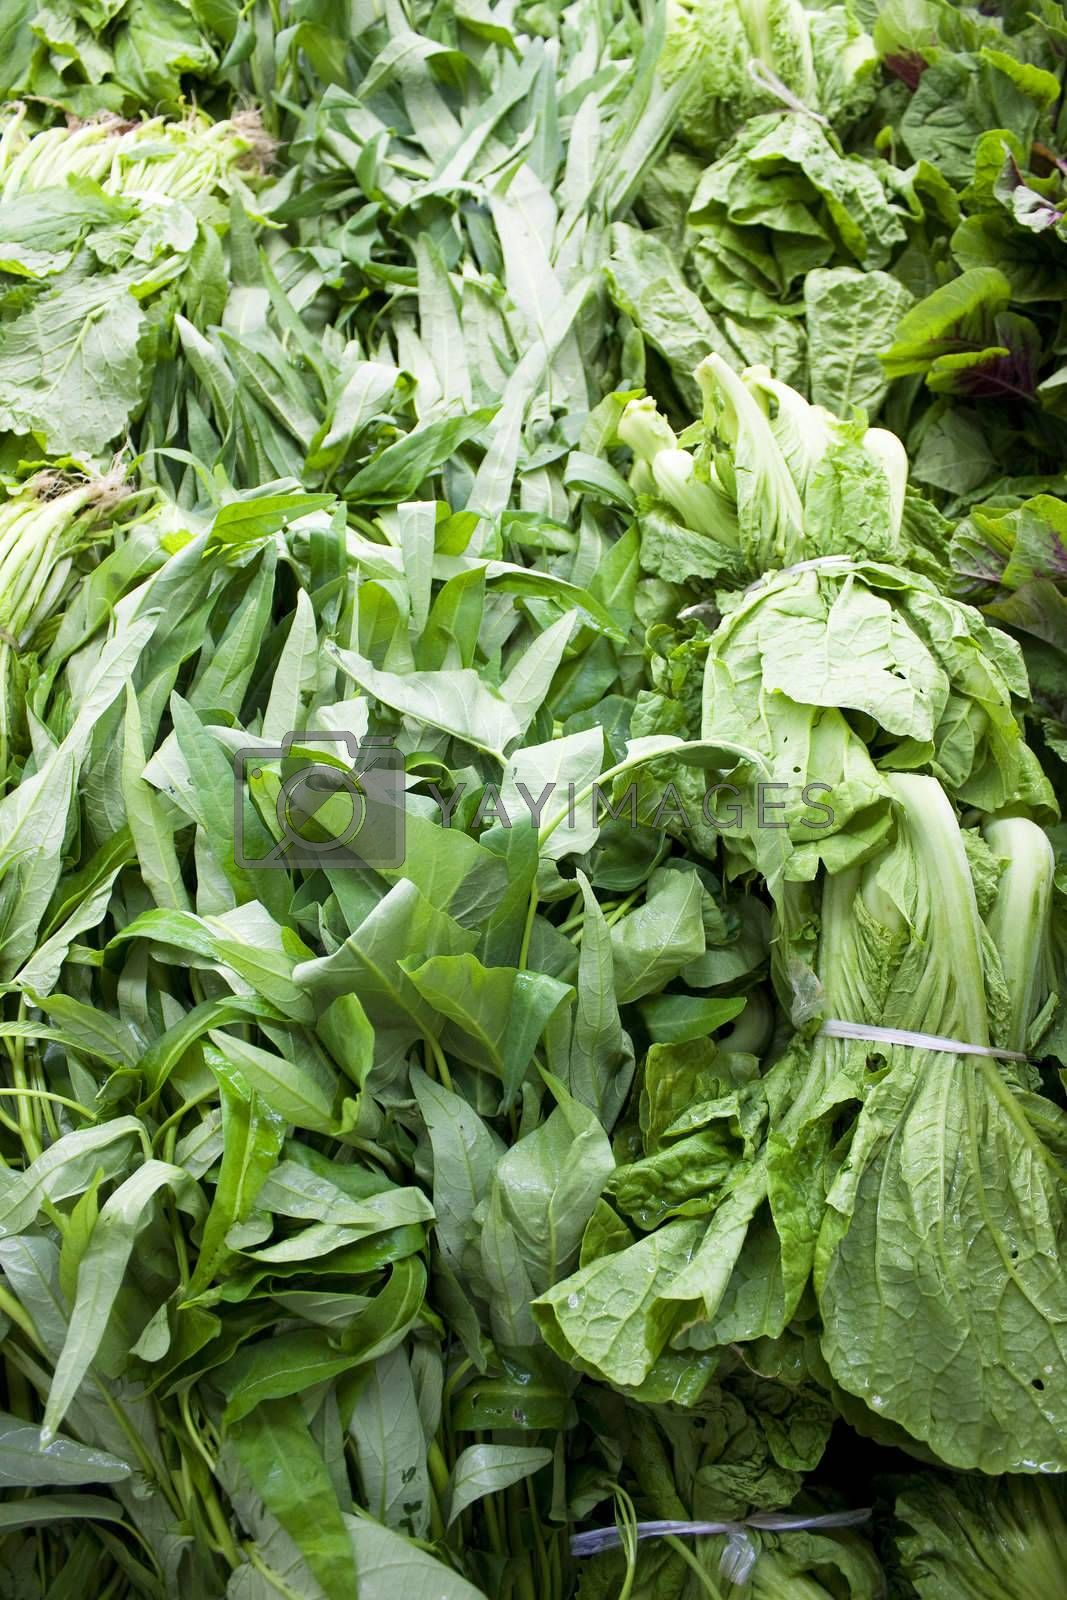 Royalty free image of Vegetables for Sale by shariffc